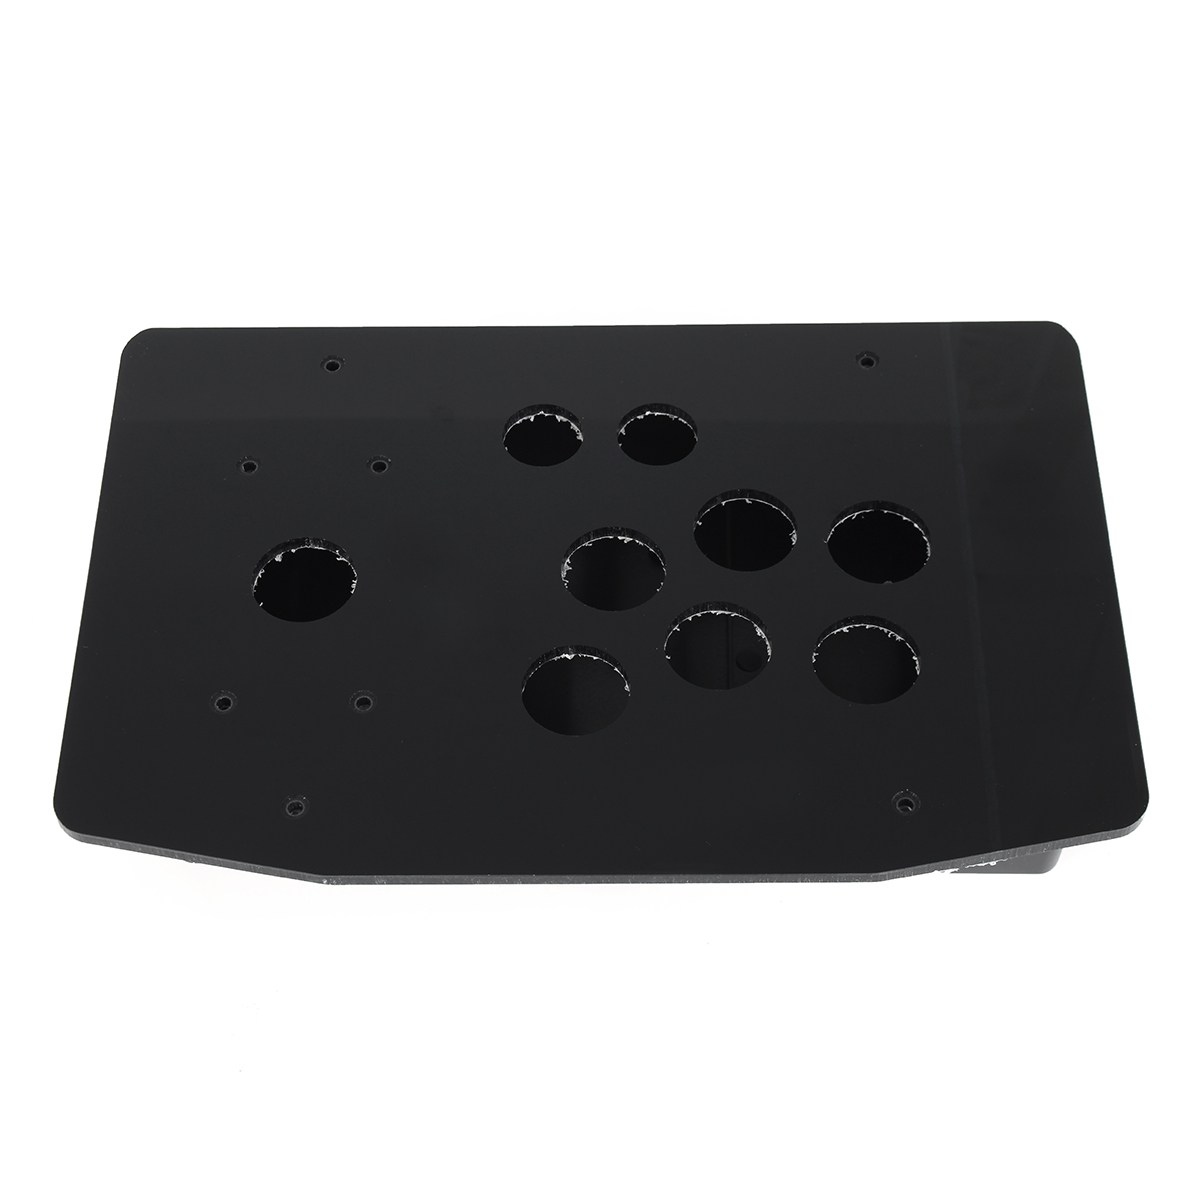 DIY Handle Arcade Set Kits Replacement Part Arcade Joystick Acrylic Panel and Case Games Accessories sanwa button and joystick use in video game console with multi games 520 in 1